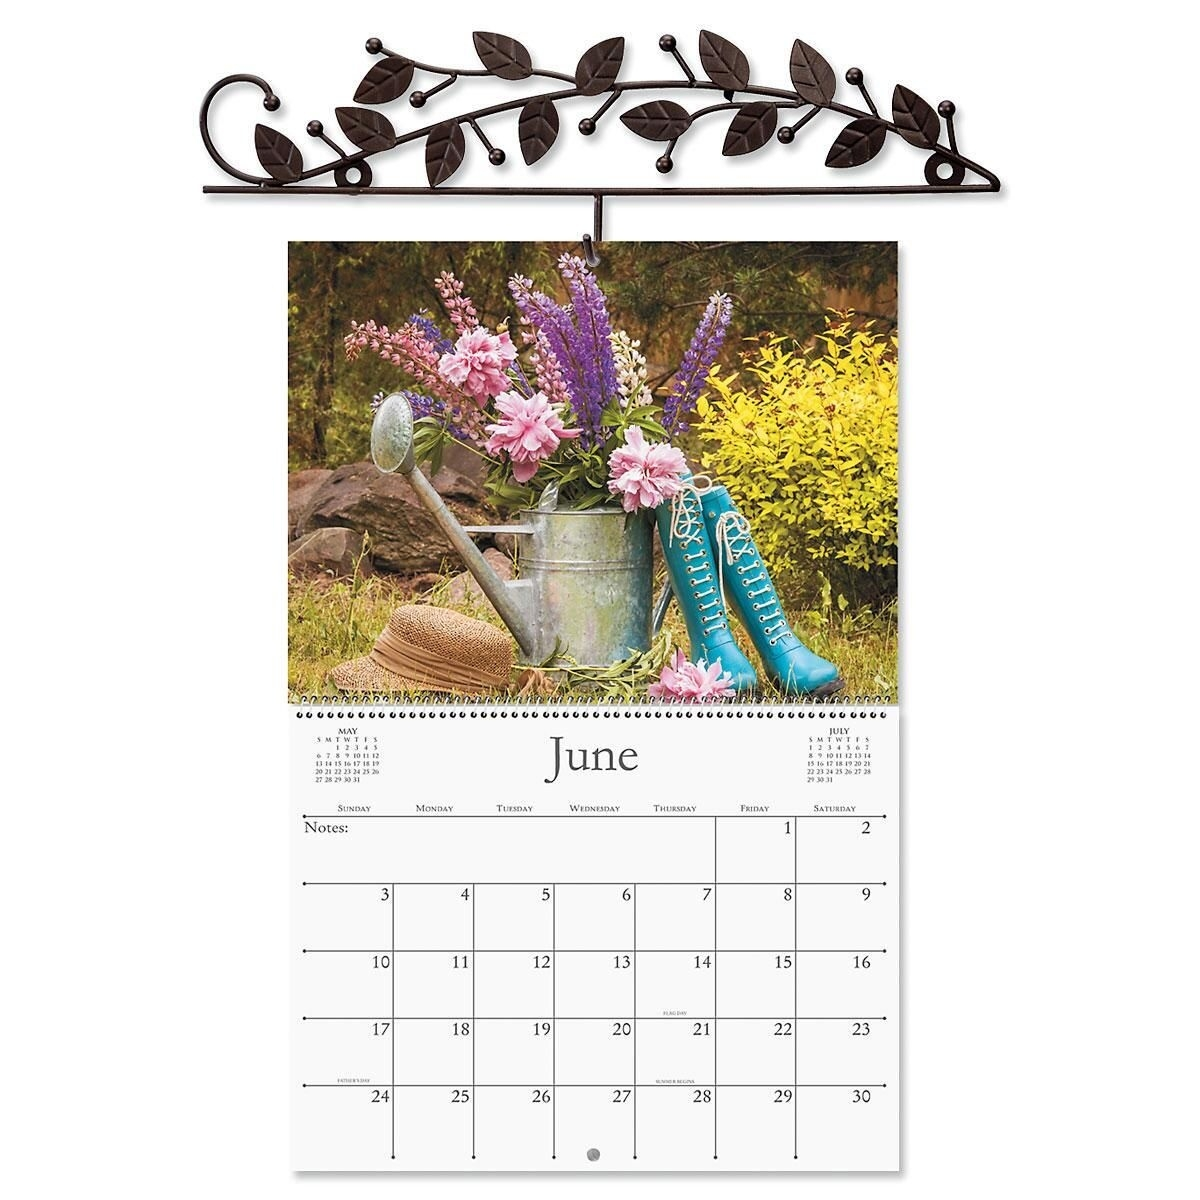 Calendar Holders For Wall Calendars | Current Catalog  12 X 12 Wall Calendar Holder